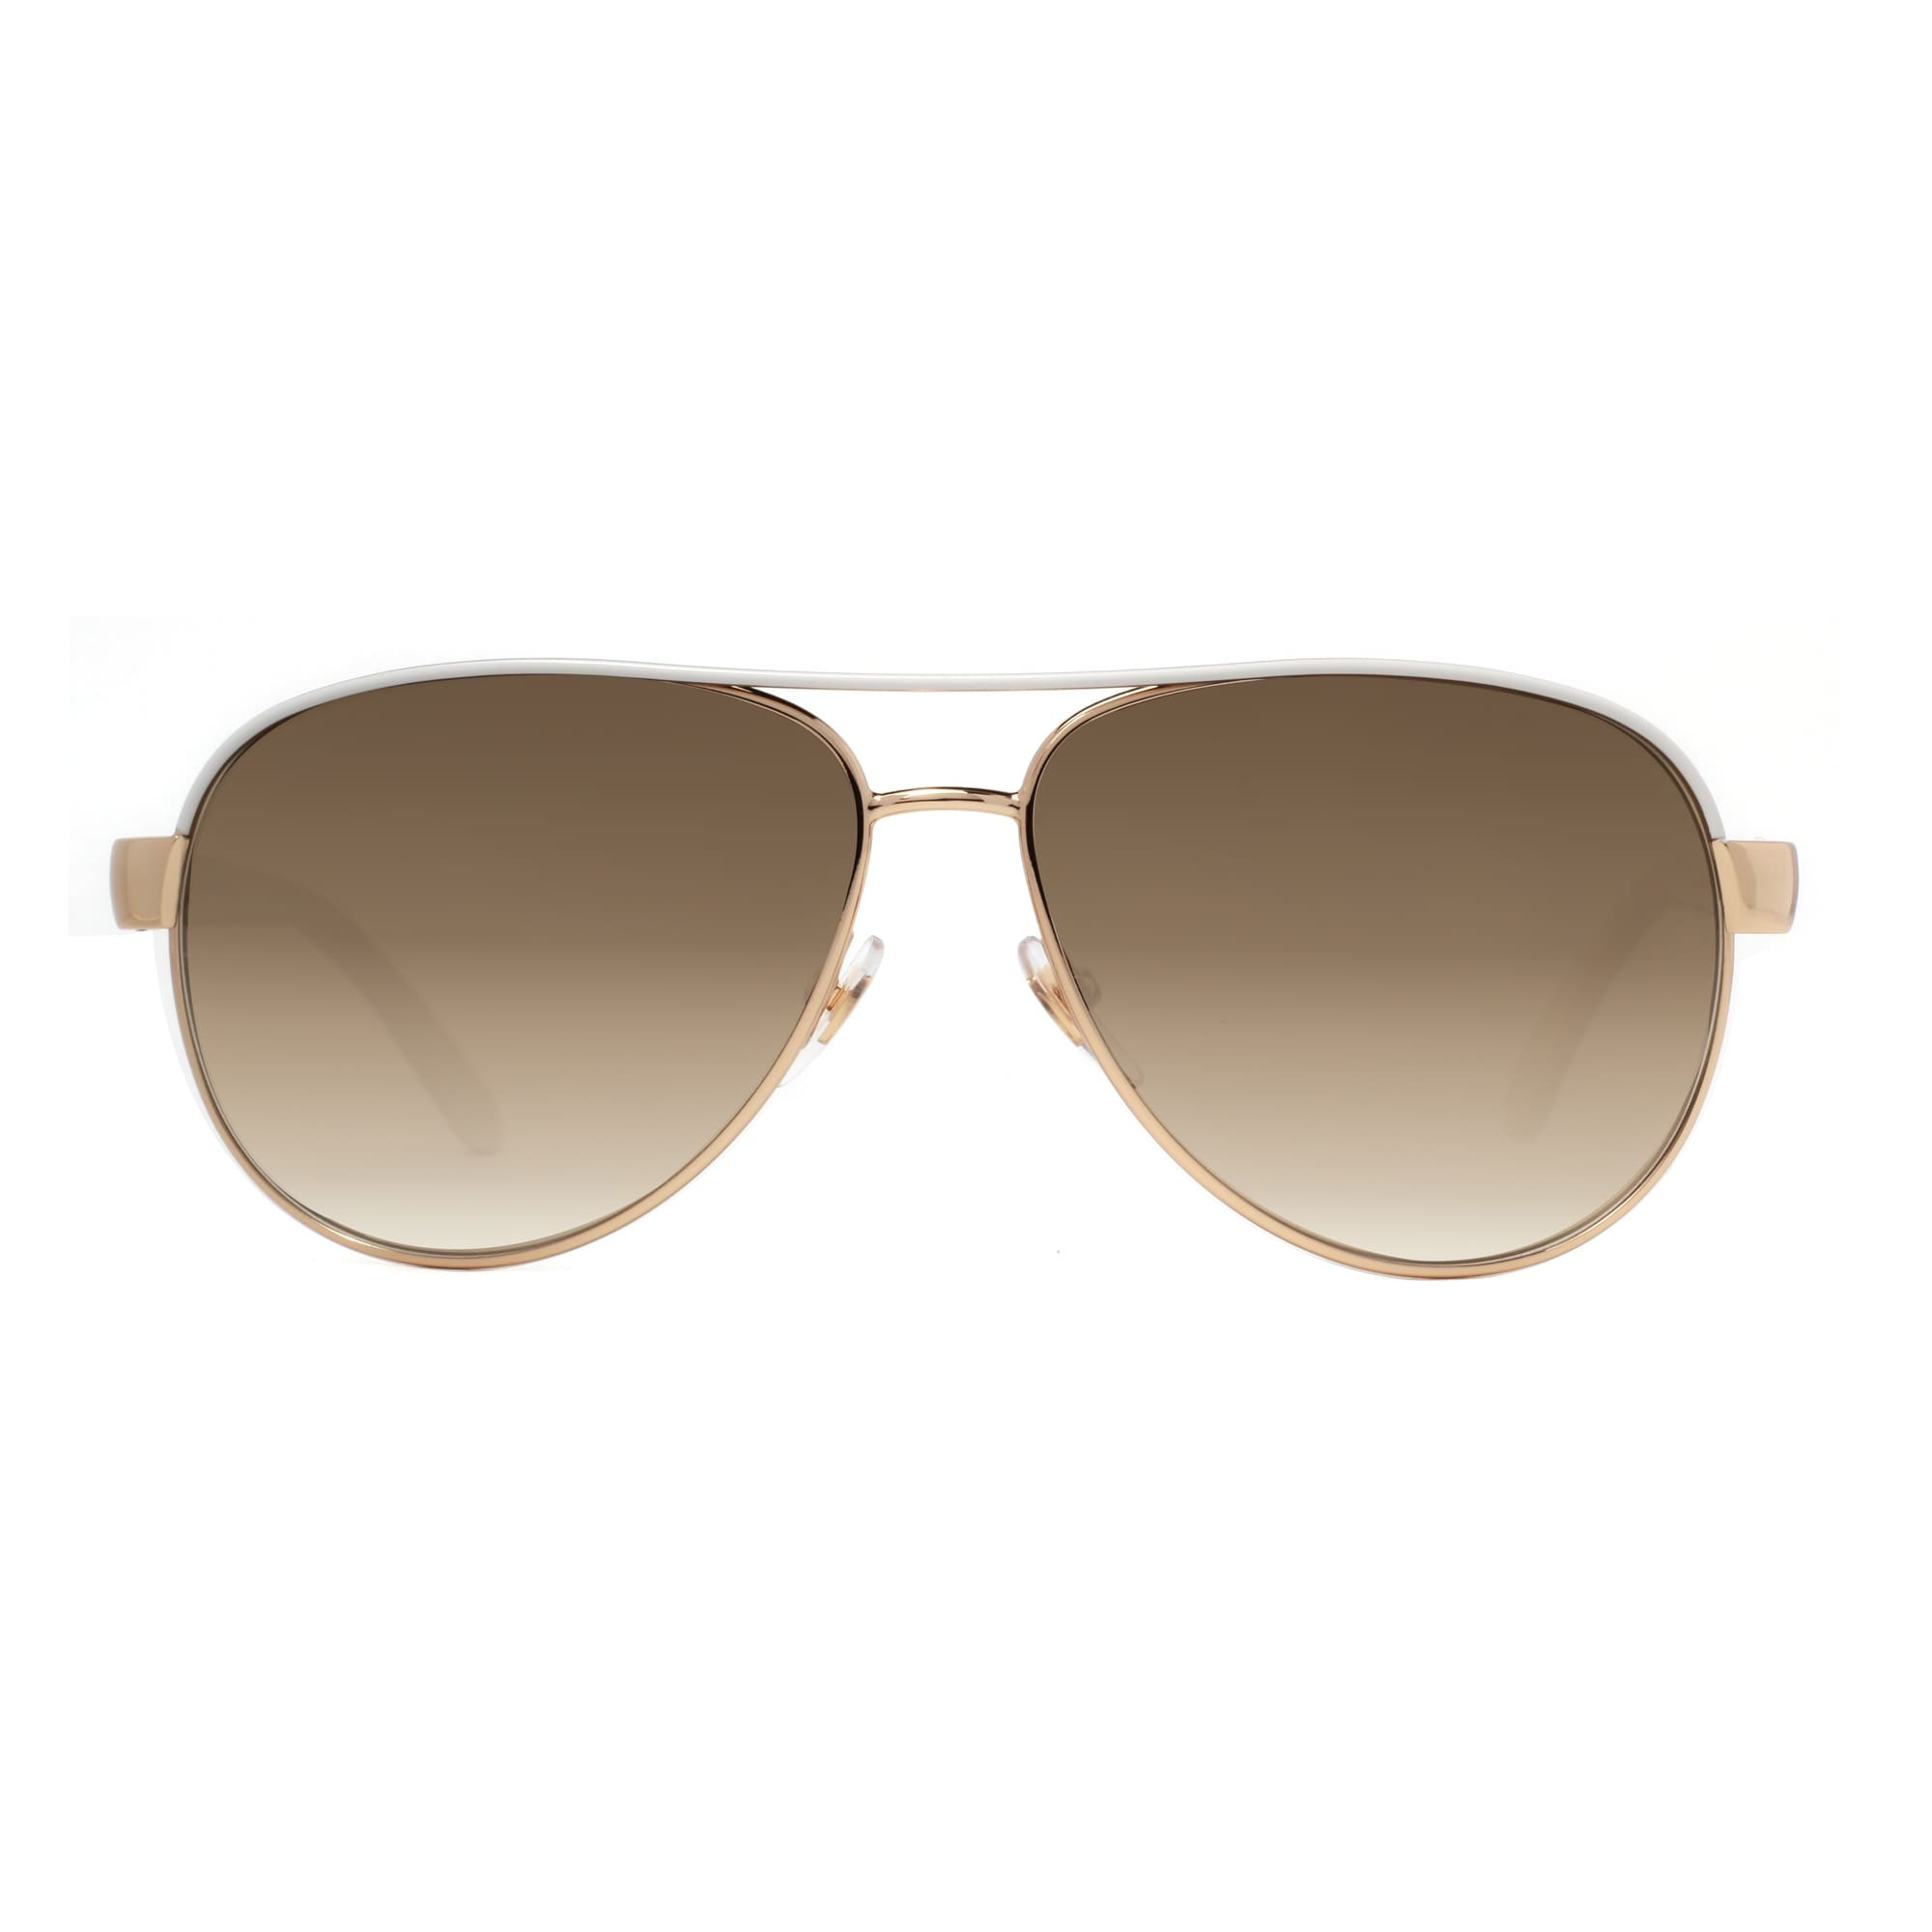 91b240d8020 Shop Gucci GG 4239 S DZB ED Ivory Gold Brown Gradient Women s Aviator  Sunglasses - ivory white gold - 58mm-13mm-135mm - Free Shipping Today -  Overstock - ...